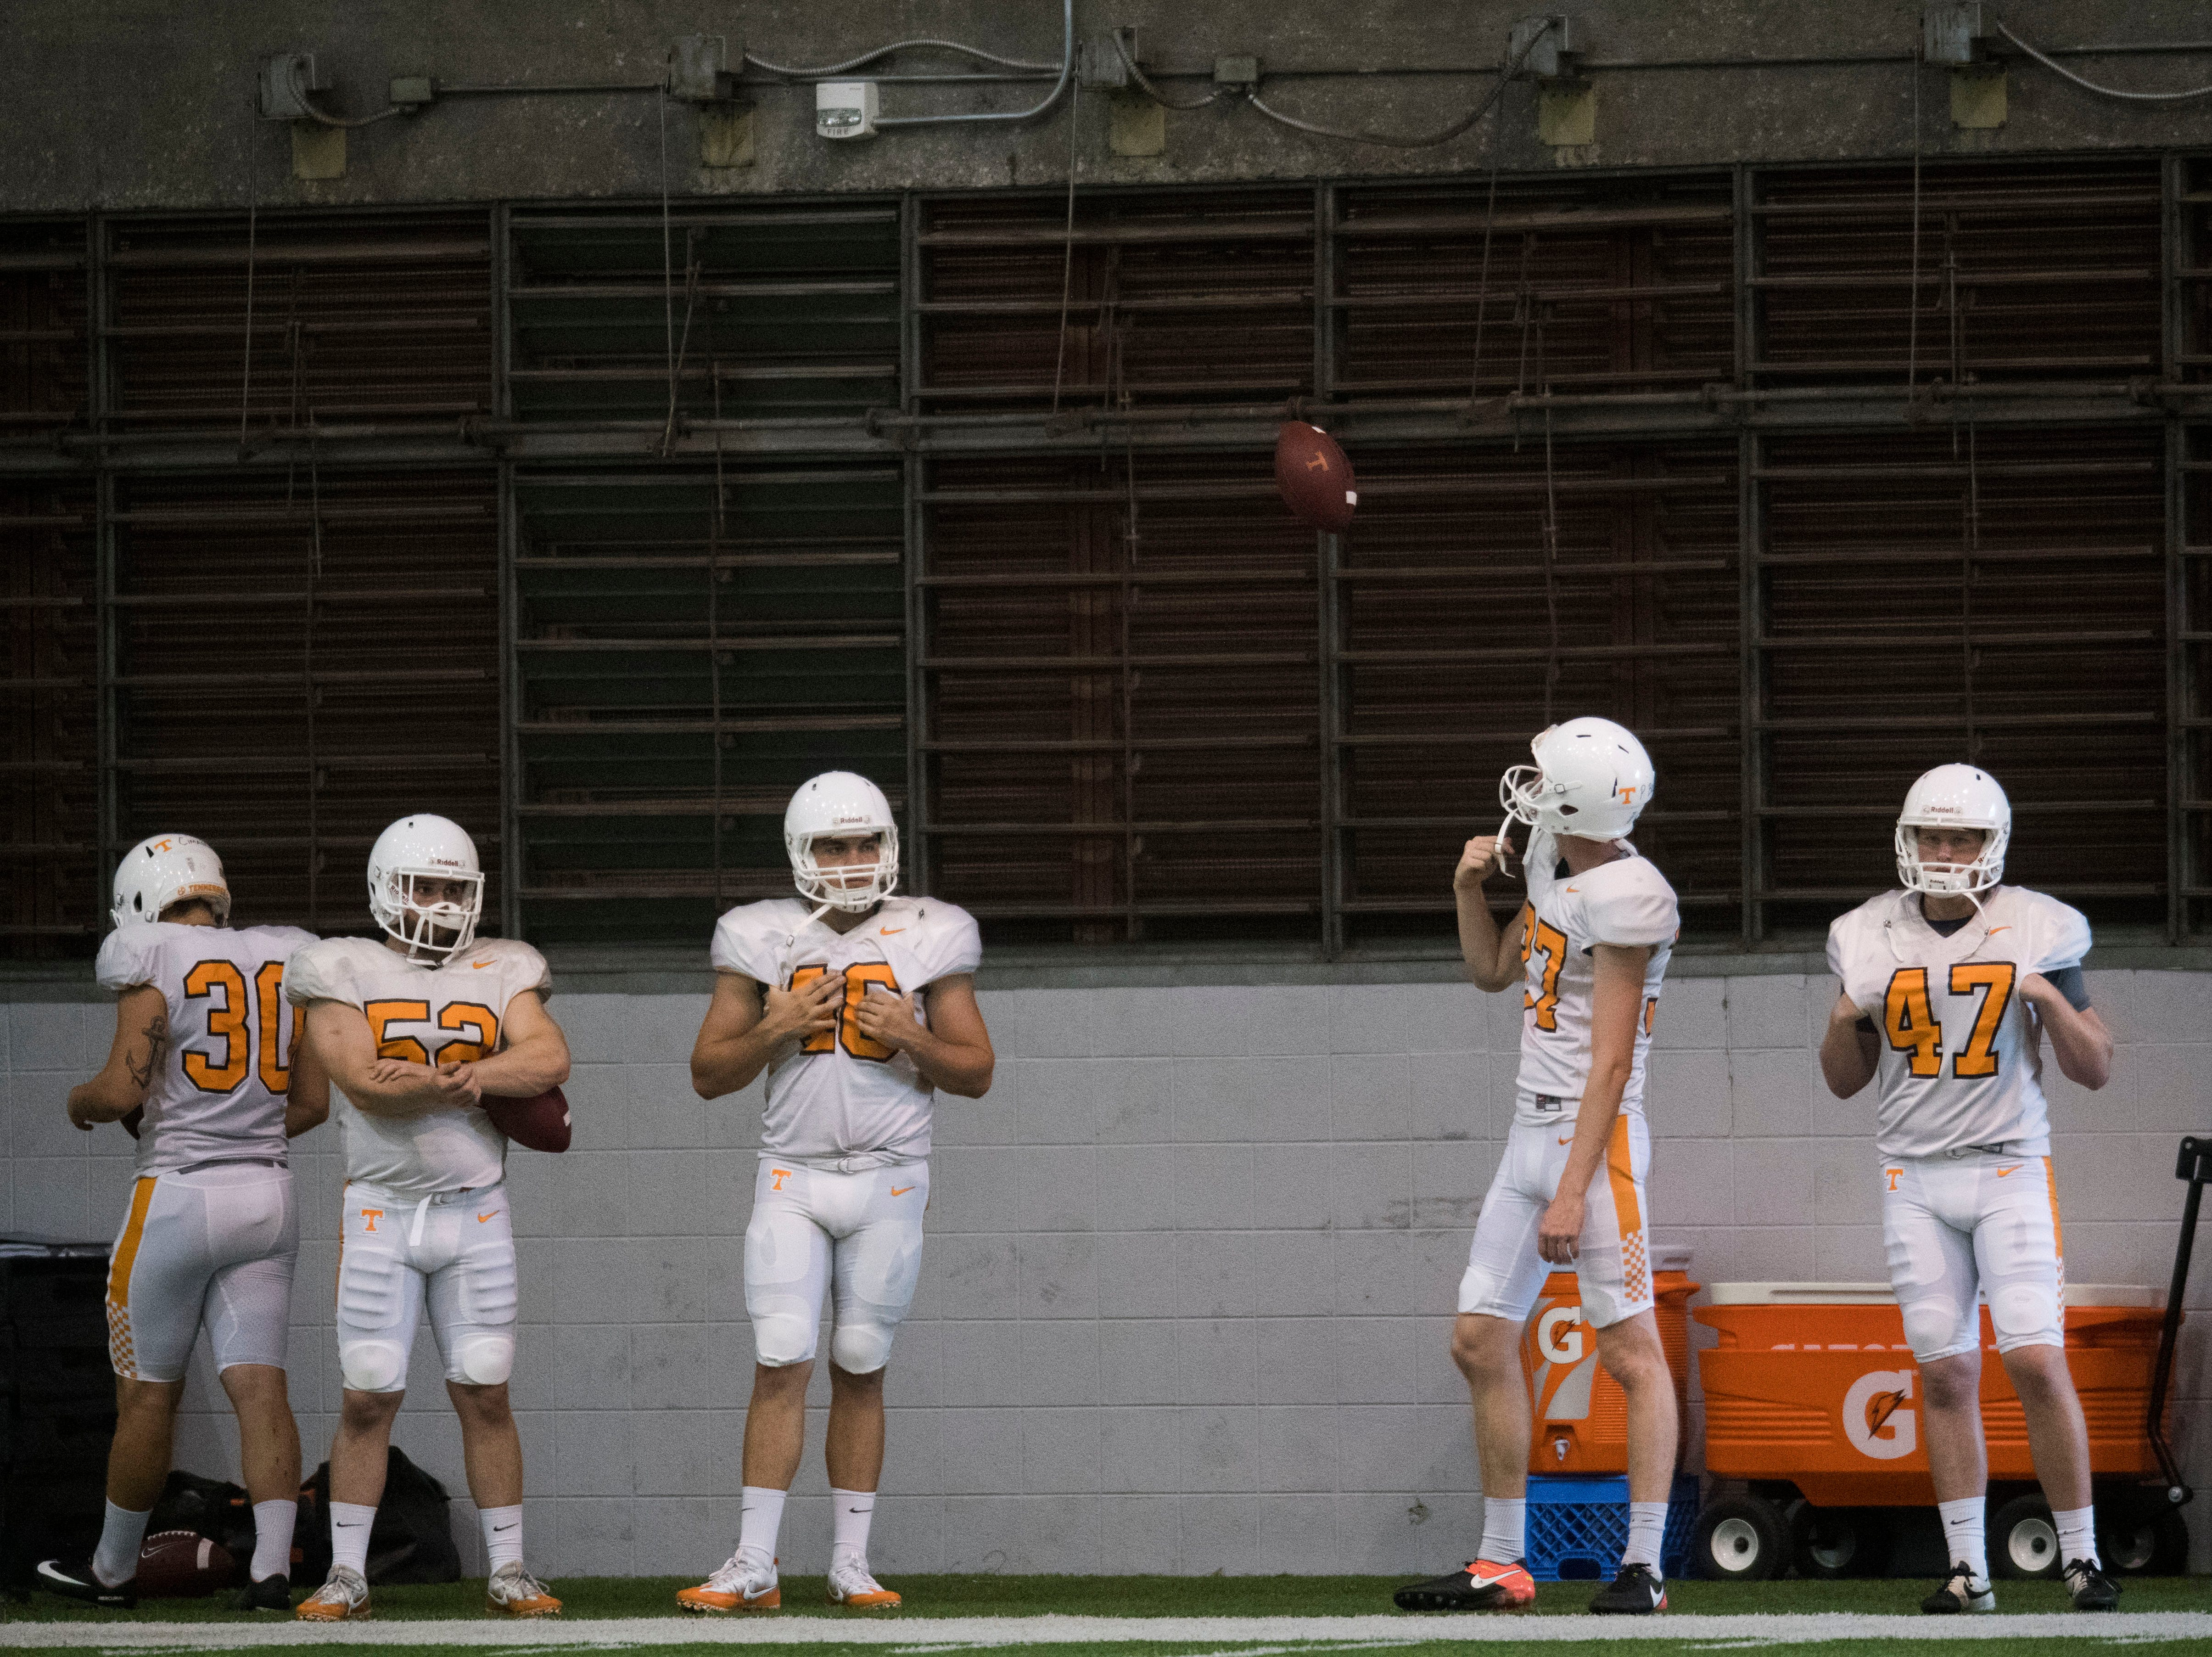 Players stand on the sidelines during UT Vols preseason football practice Wednesday, Aug. 8, 2018.